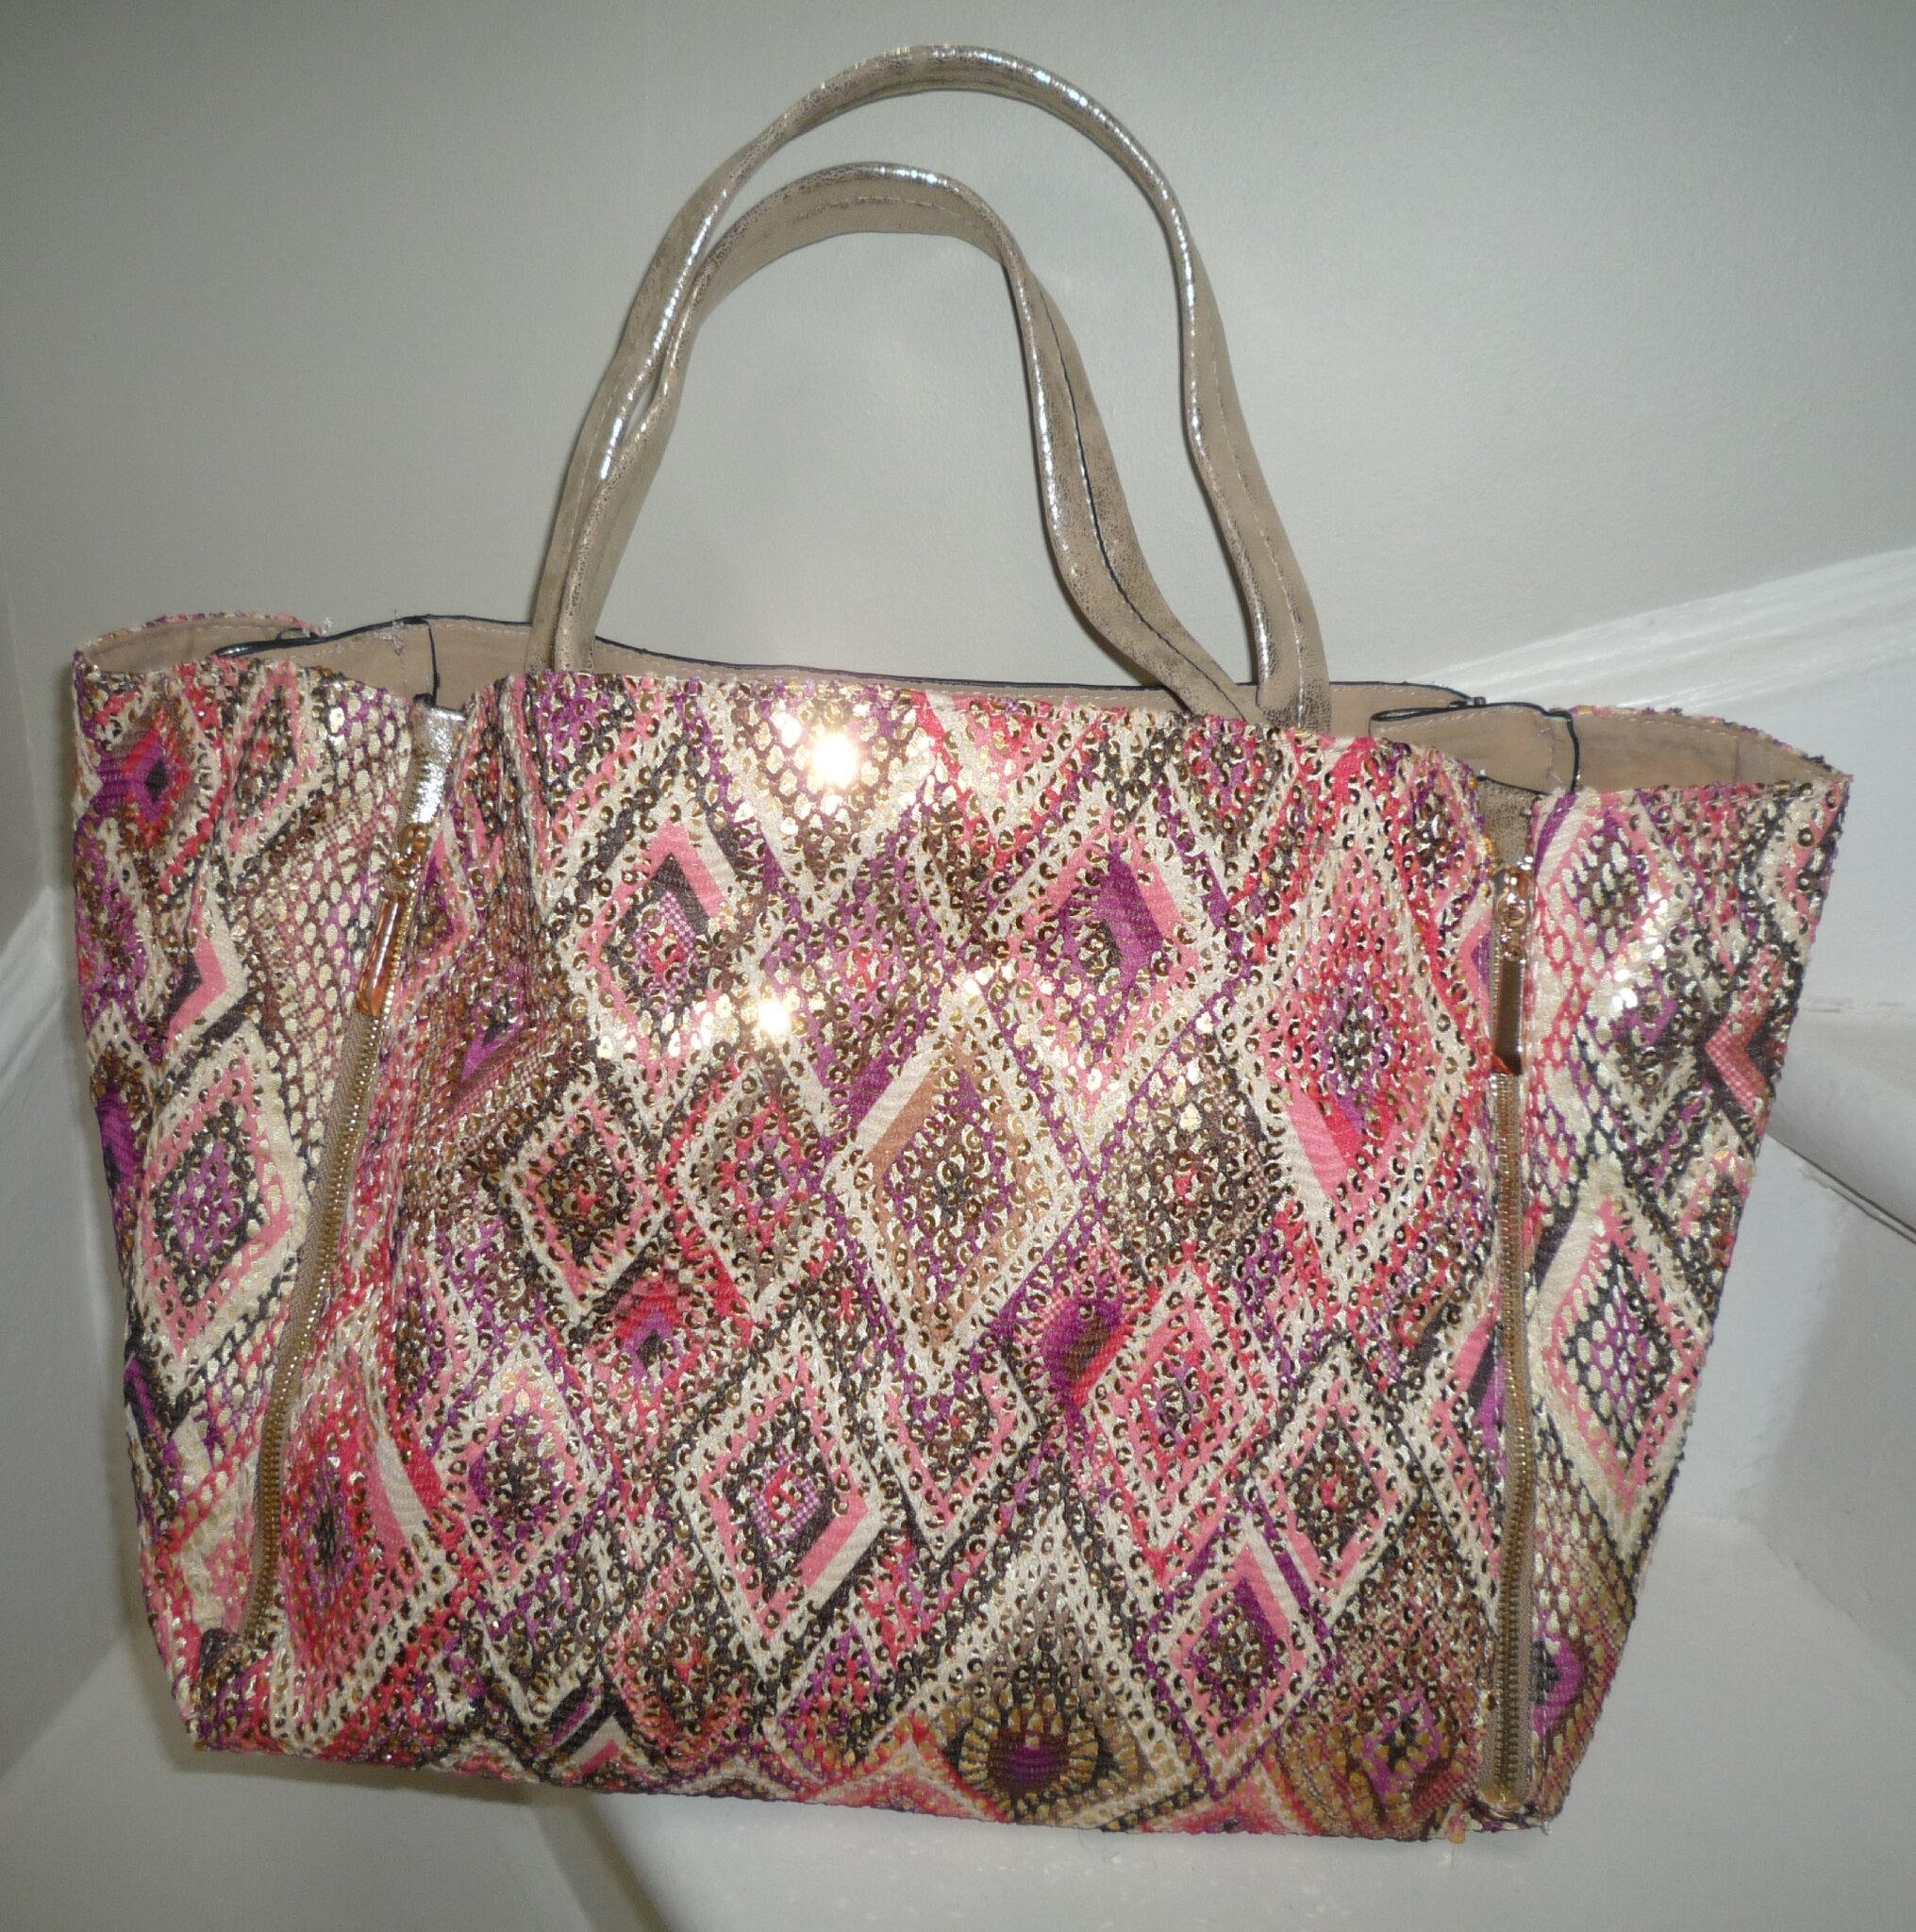 Sac Cabas 'Losanges' multicolore